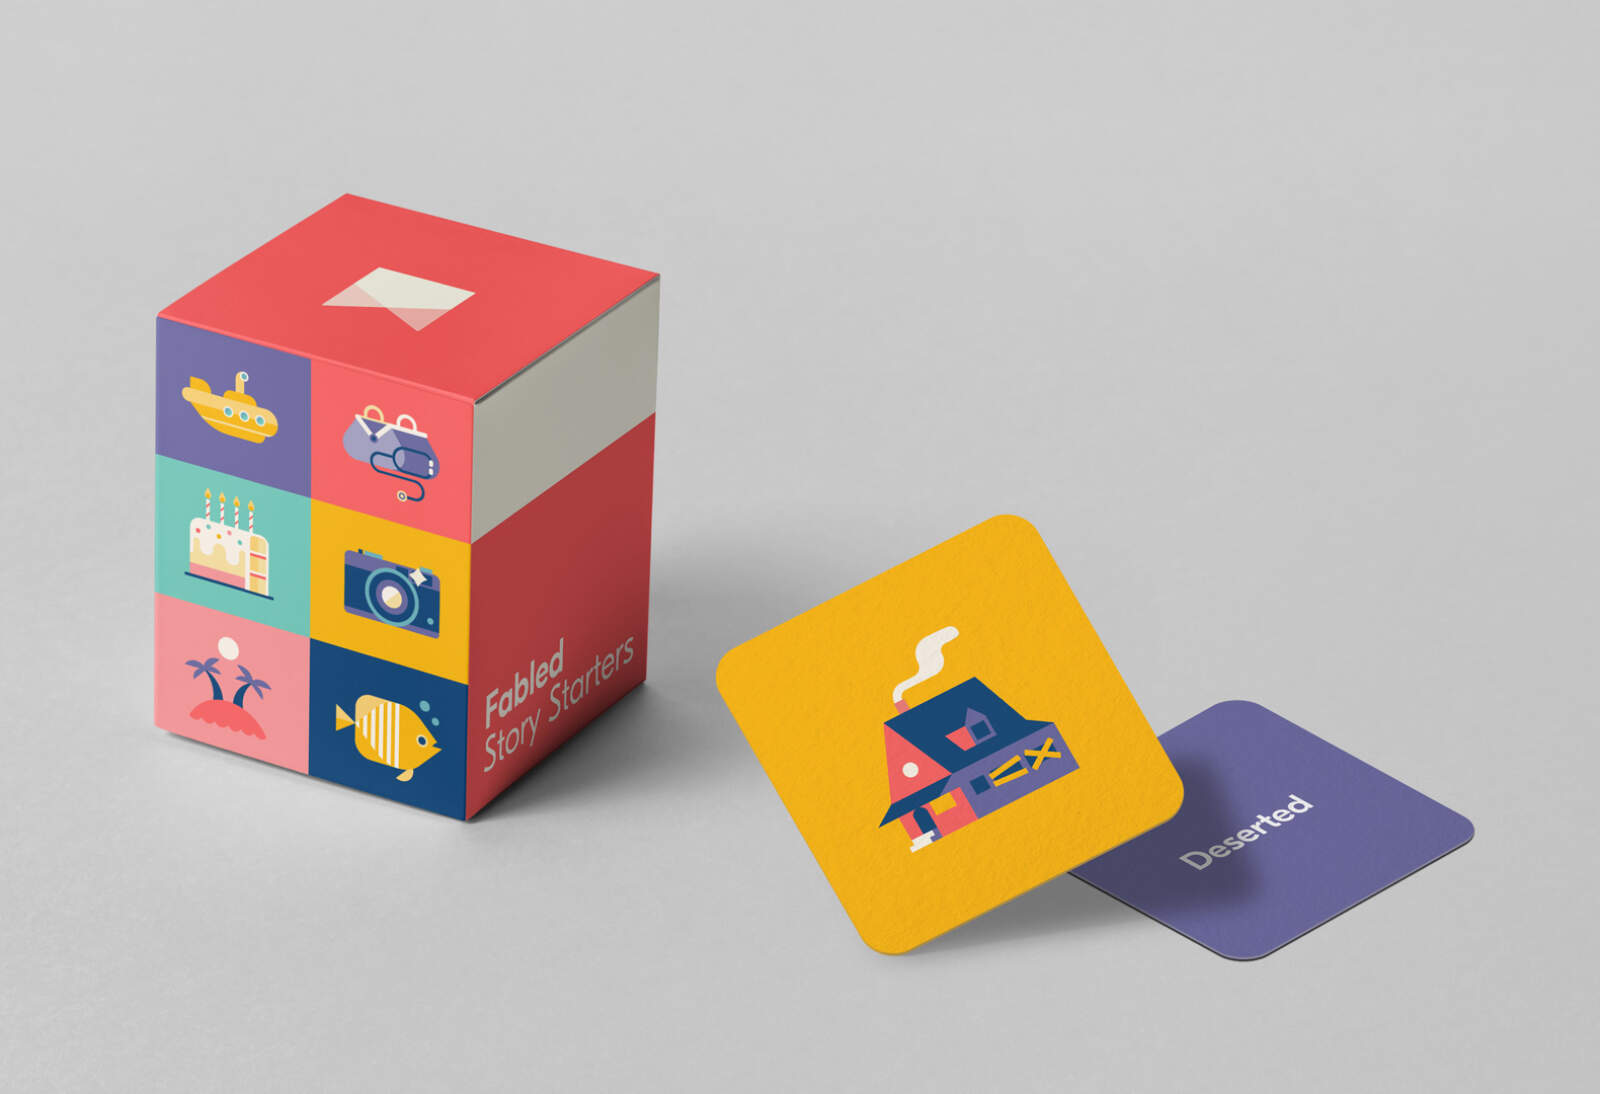 Physical story starter cards combining the Fabled branding with illustrations for inspiration.